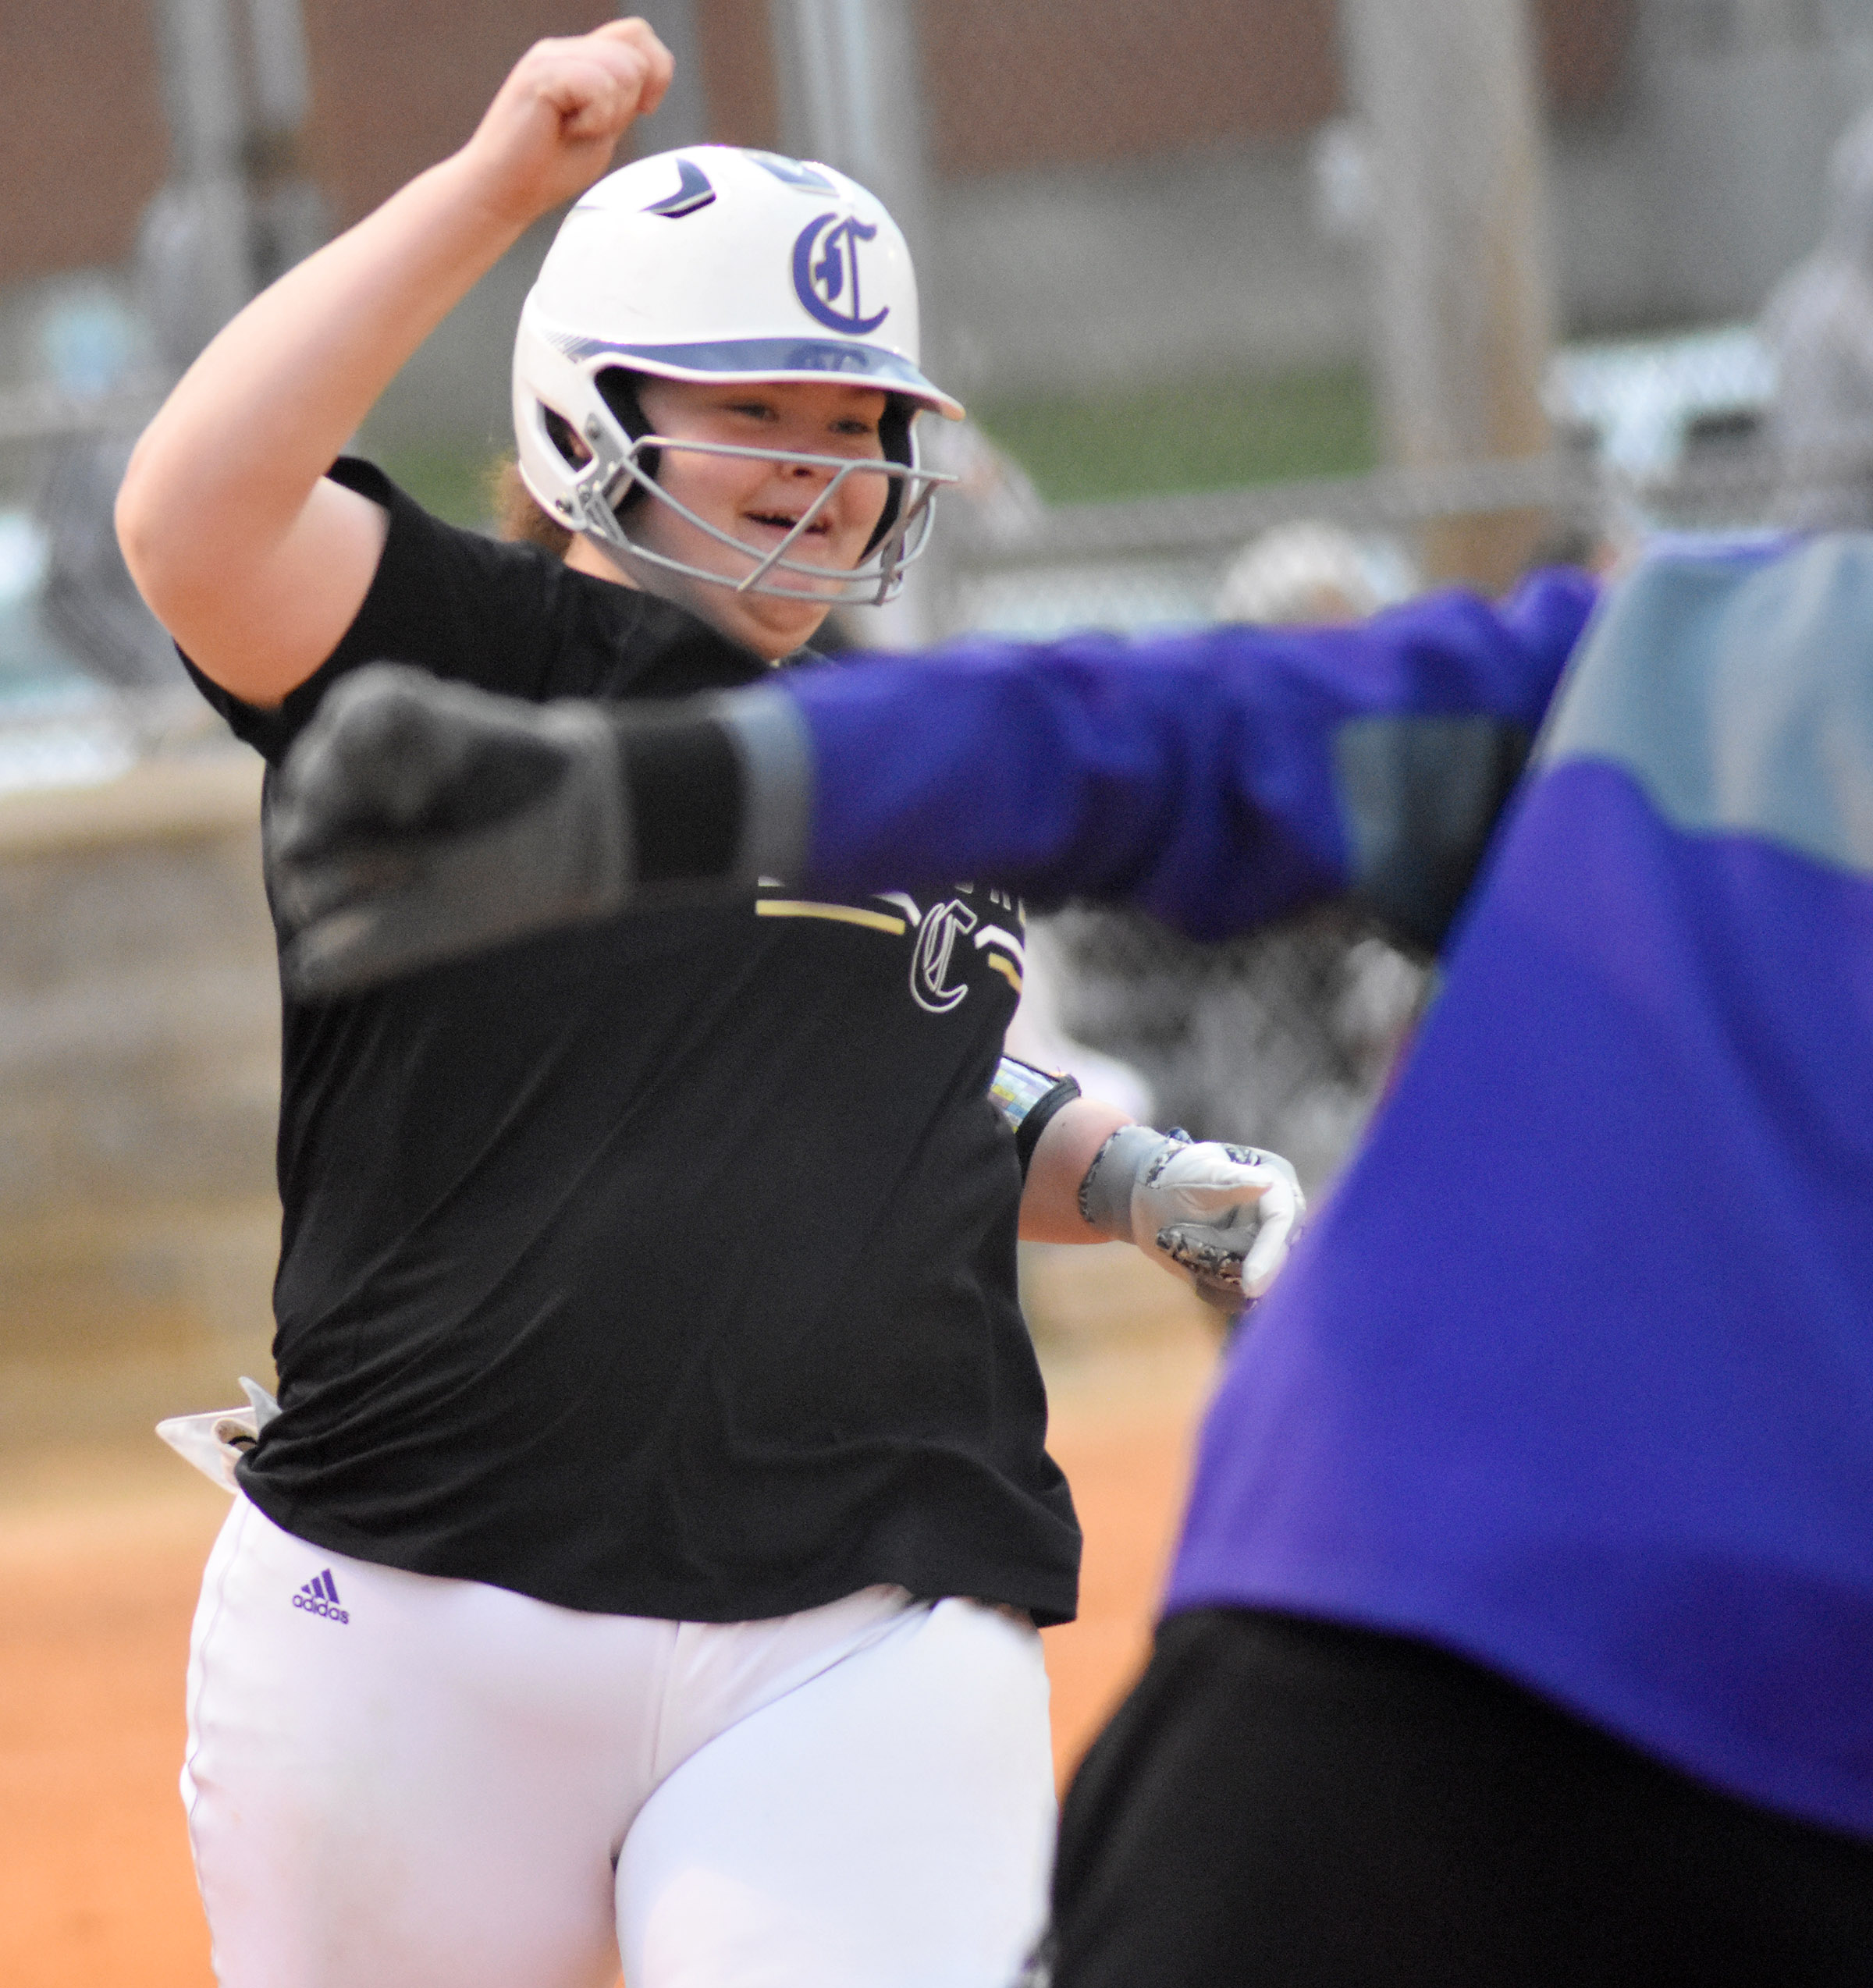 CHS sophomore Shallan Philpott smiles as she rounds the bases after hitting a home run.